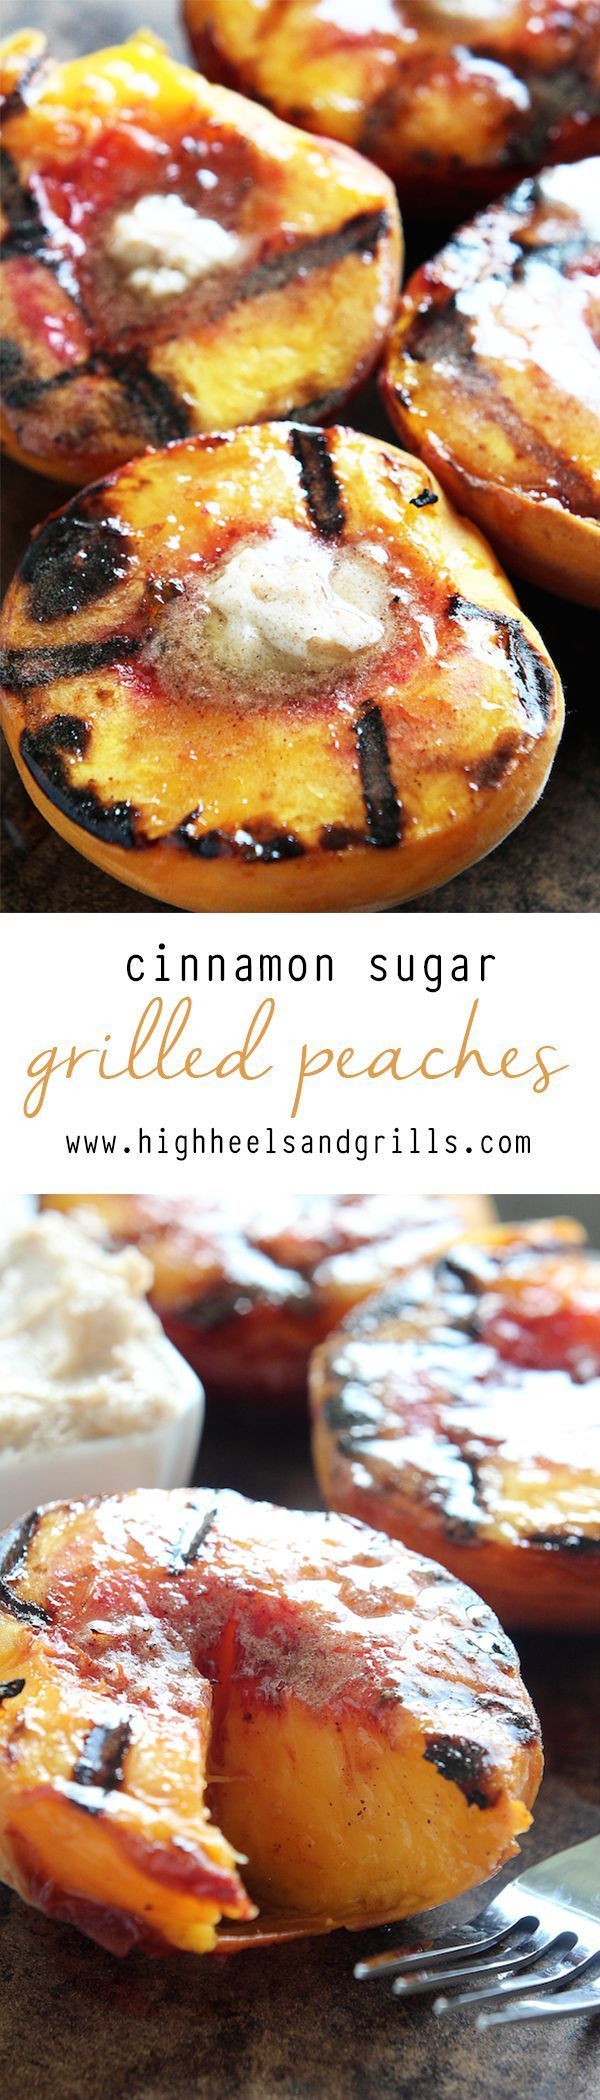 Cinnamon Sugar Grilled Peaches are a yummy dessert that can be made quick! They are topped with a cinnamon sugar butter and taste like little peach cobblers! #ad